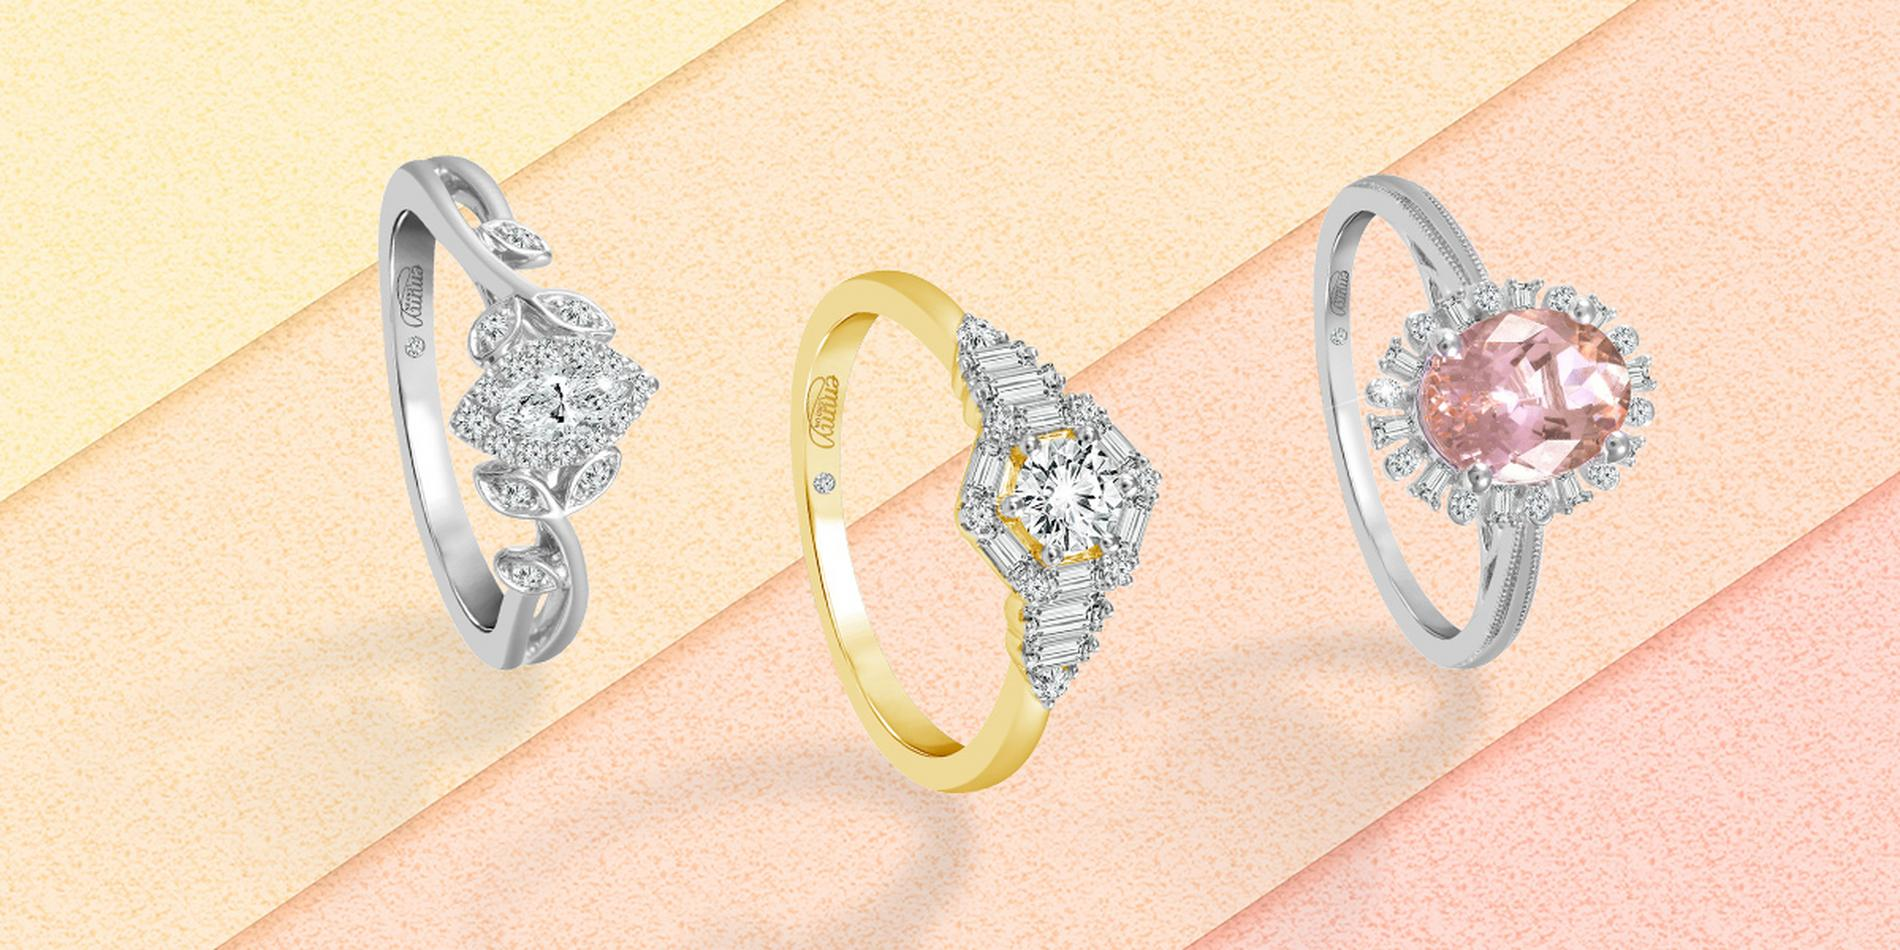 How to choose a unique engagement ring